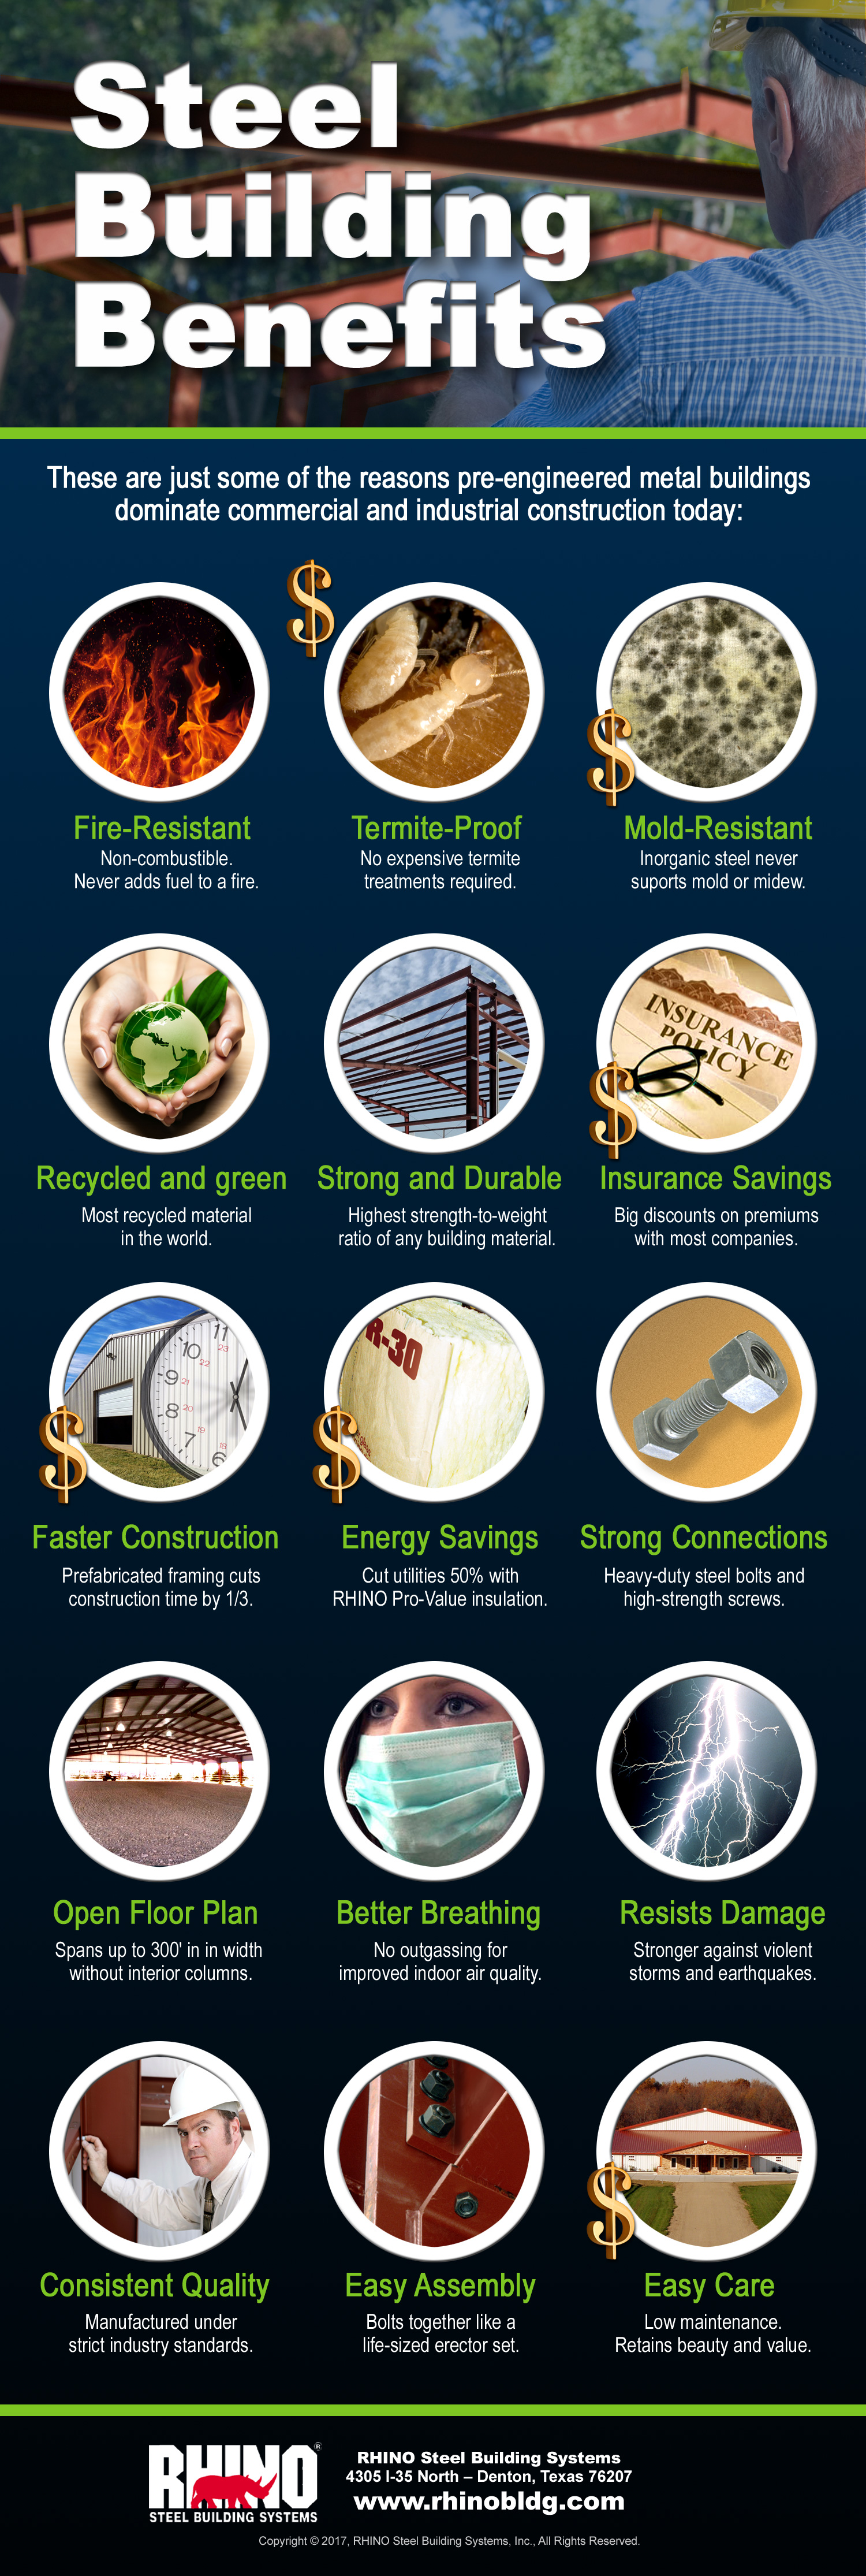 RHINO infographic shows 15 steel building benefits.